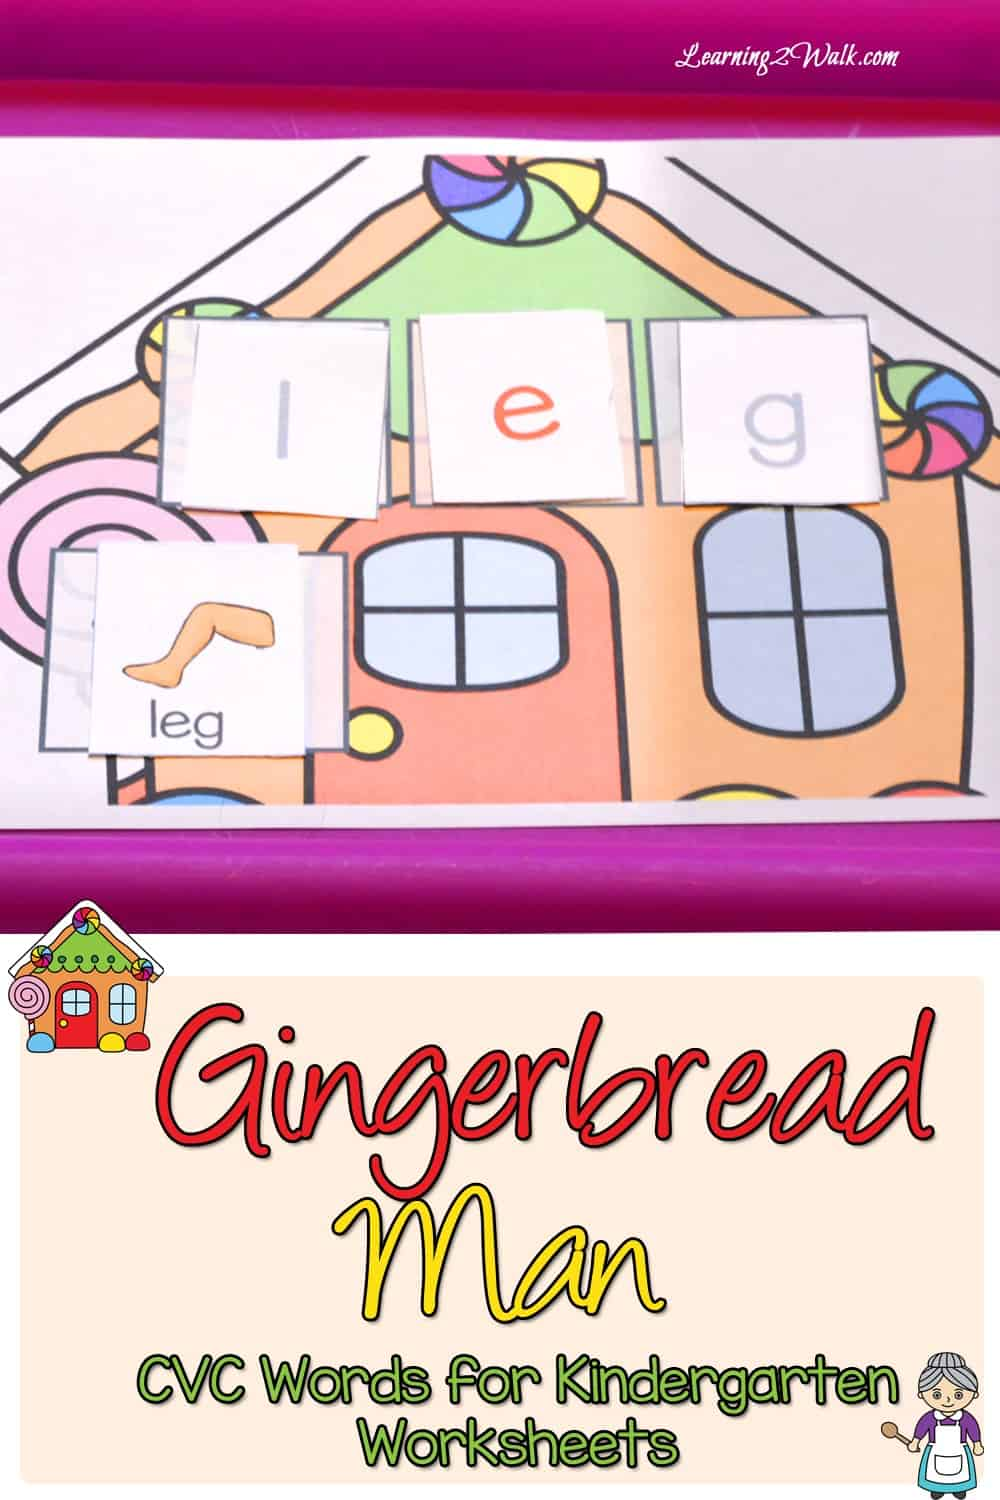 My daughter thoroughly enjoyed playing with her Gingerbread Man CVC Word kindergarten worksheets. I created this as one of our Gingerbread Man activities because she was so fascinated with the story.